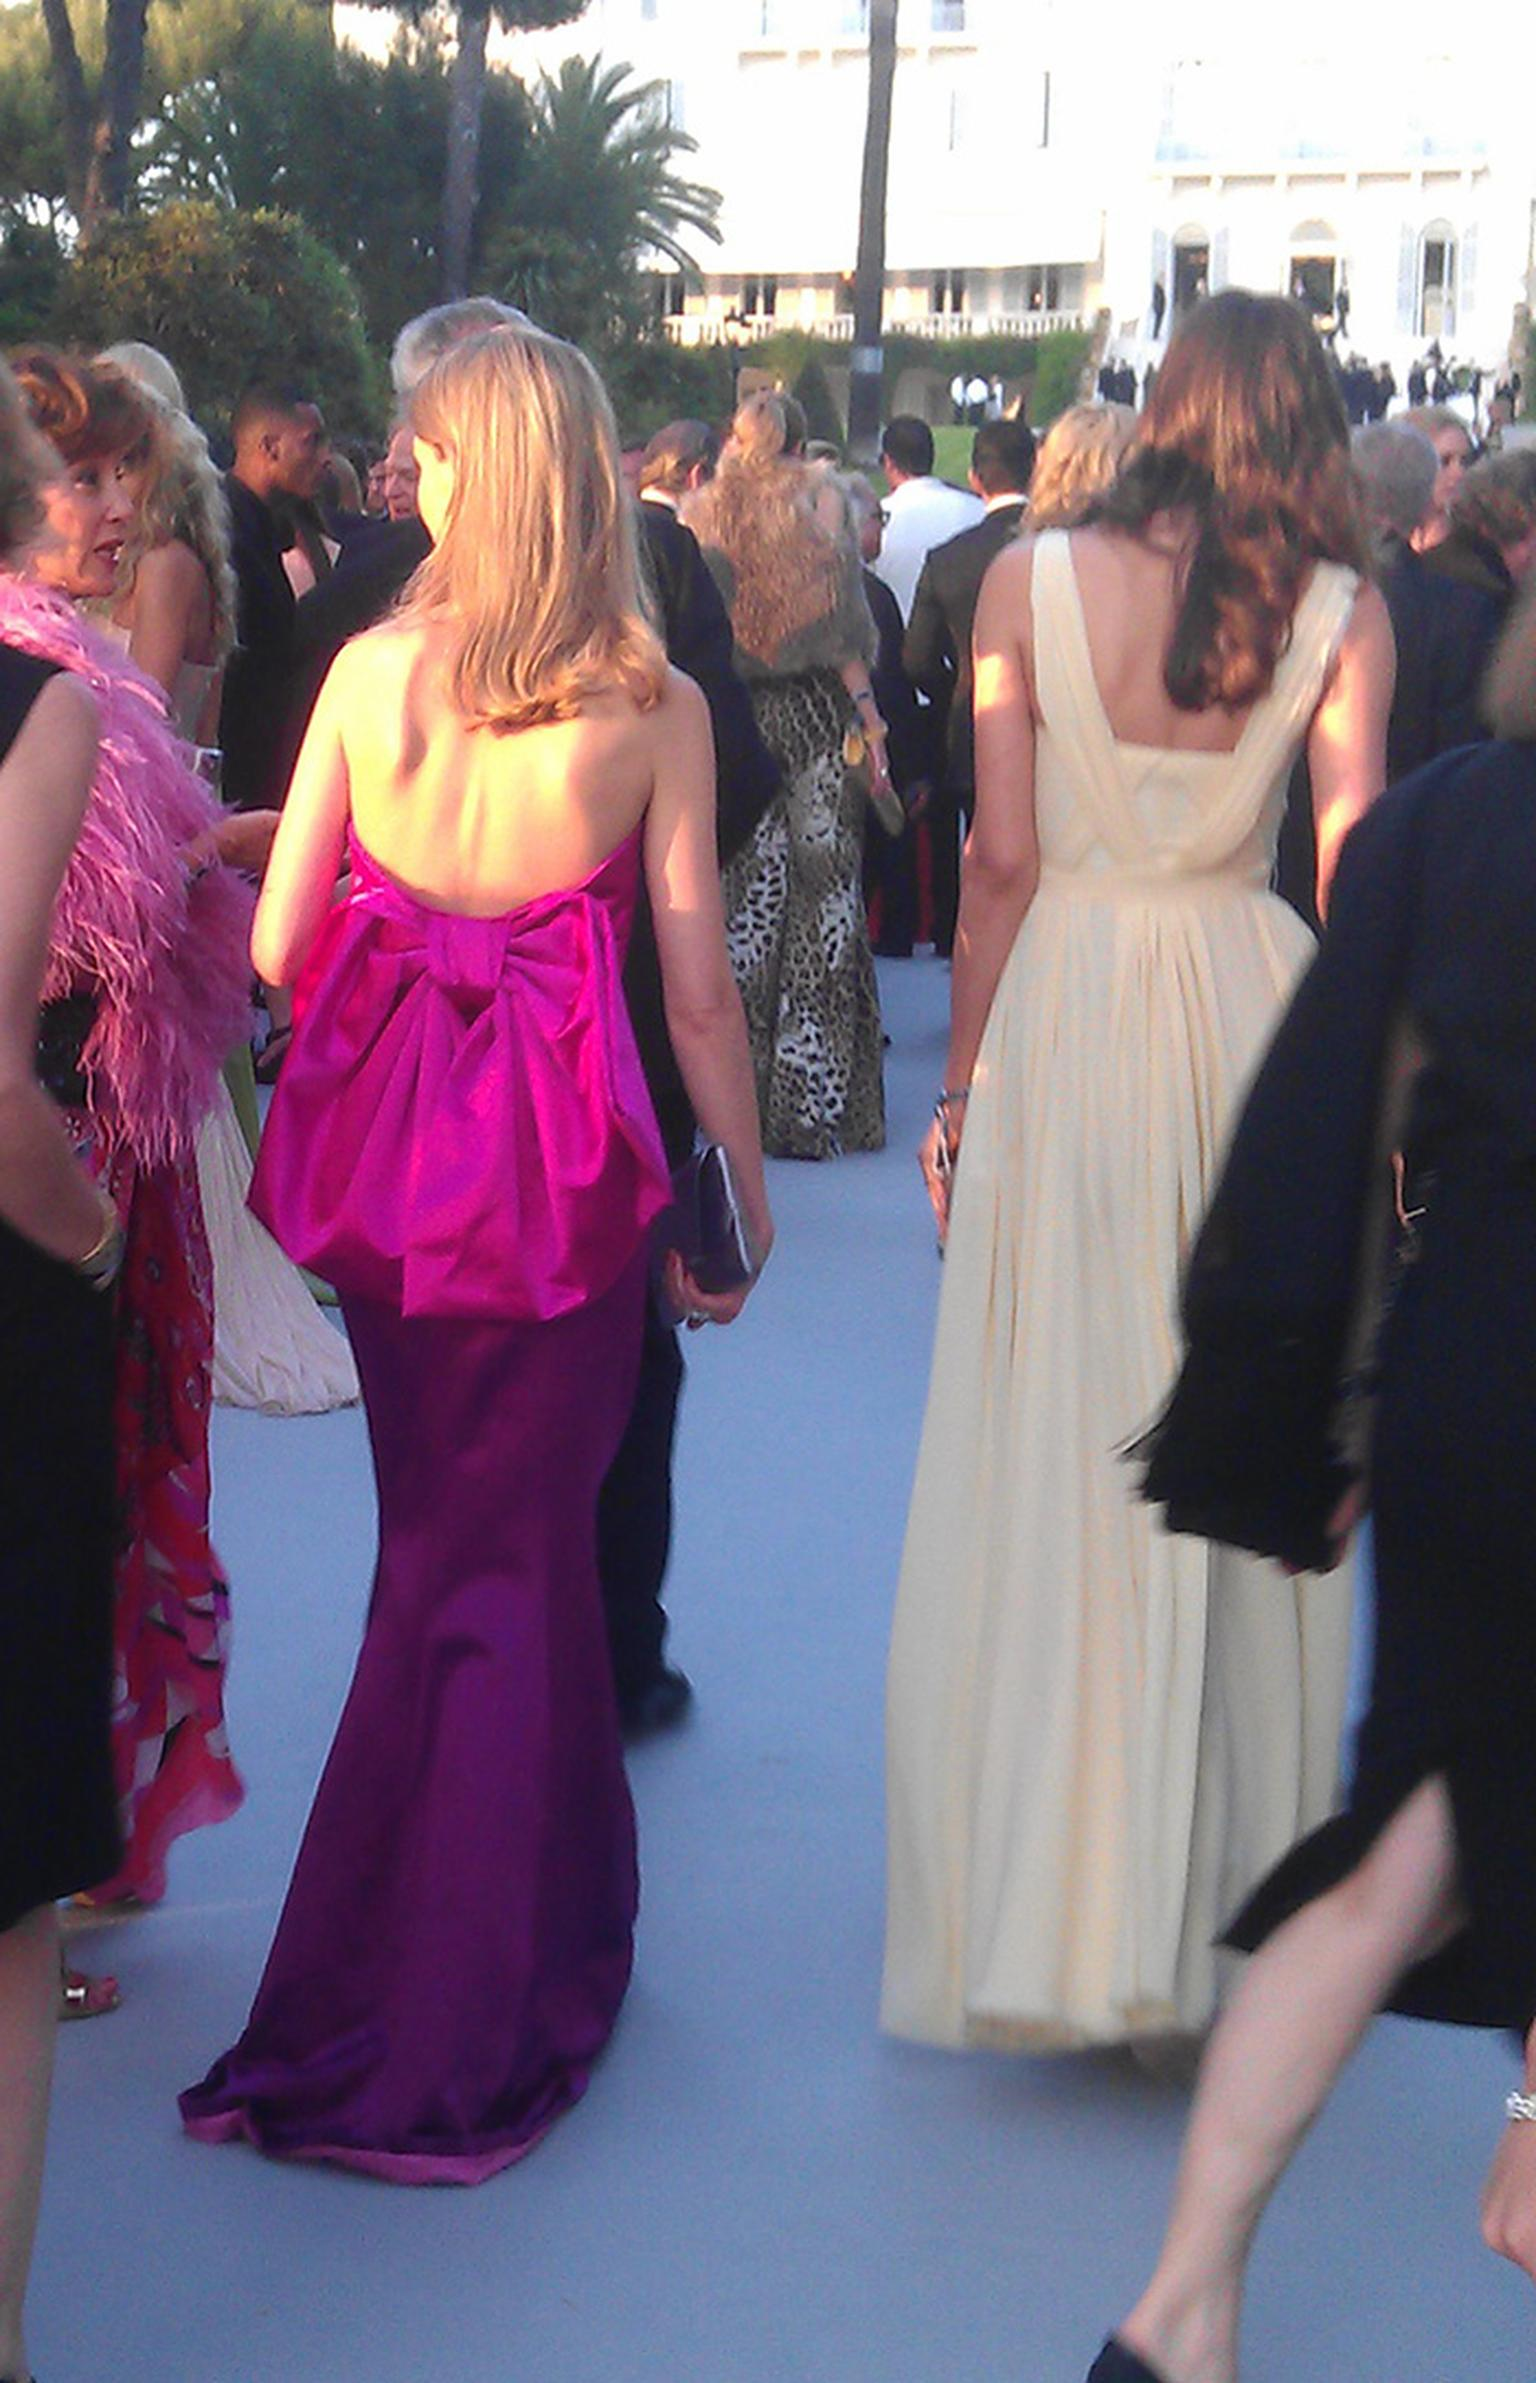 Beautiful-Gowns-and-ladies-at-AmfAR.jpg